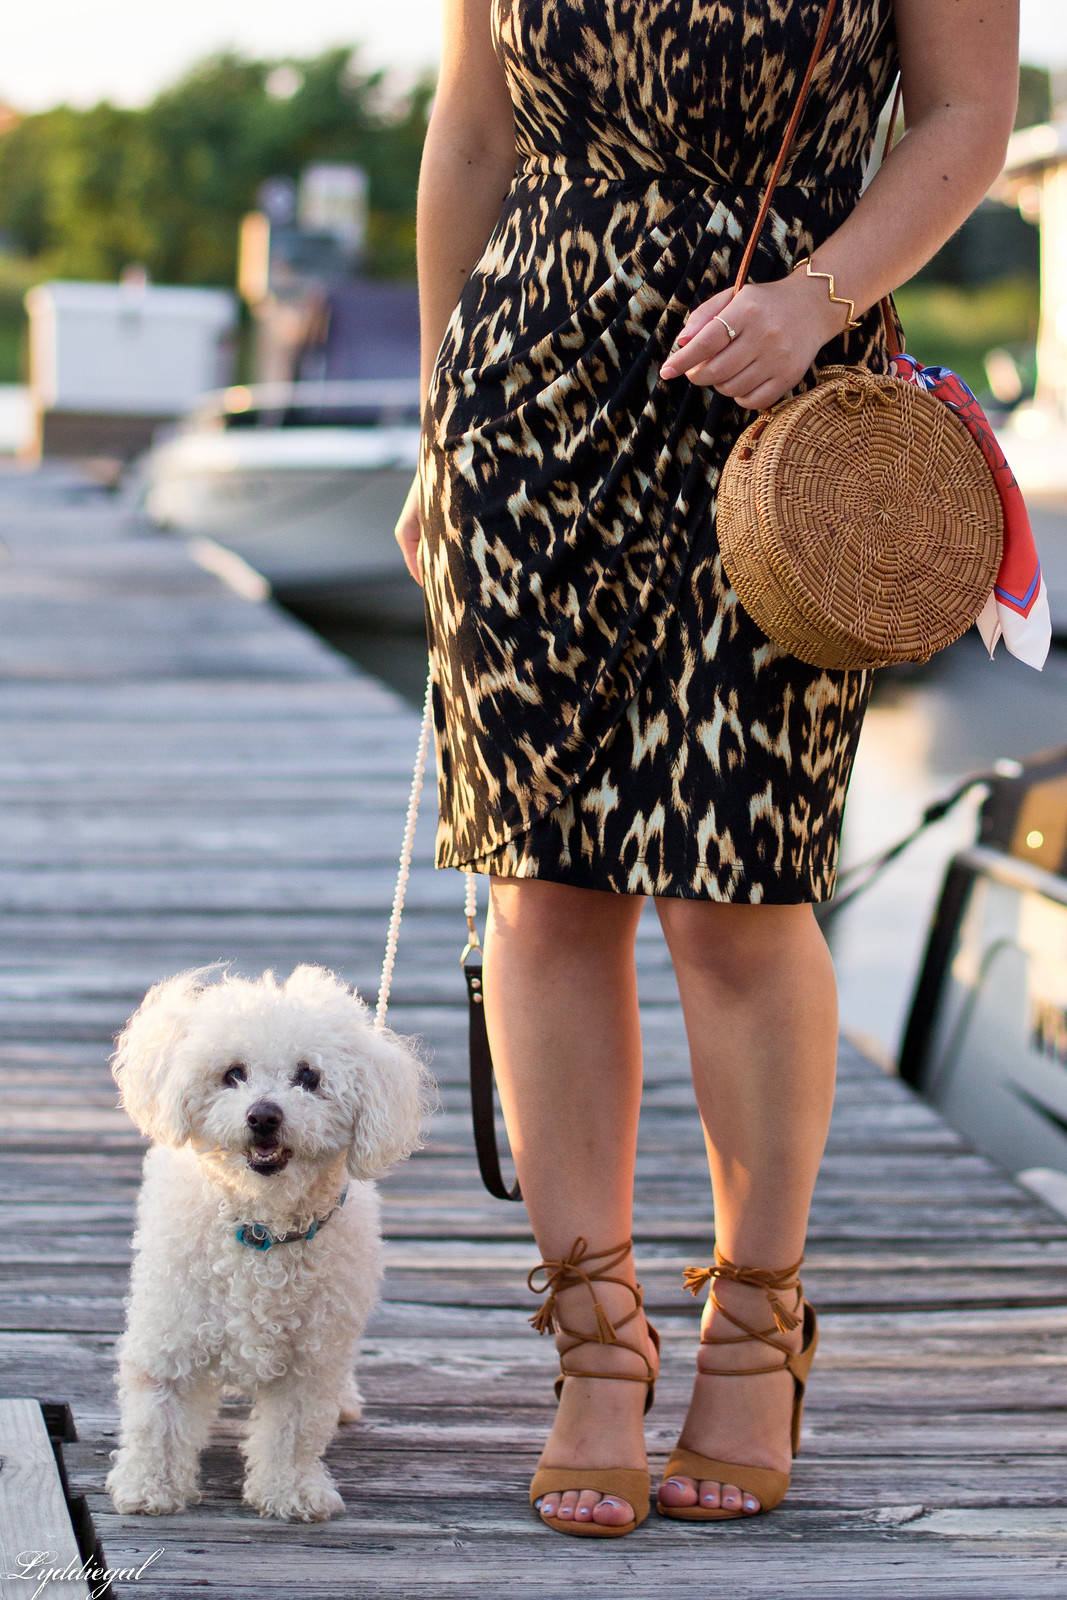 leopard sheath dress, round rattan bag, dog walking-2.jpg